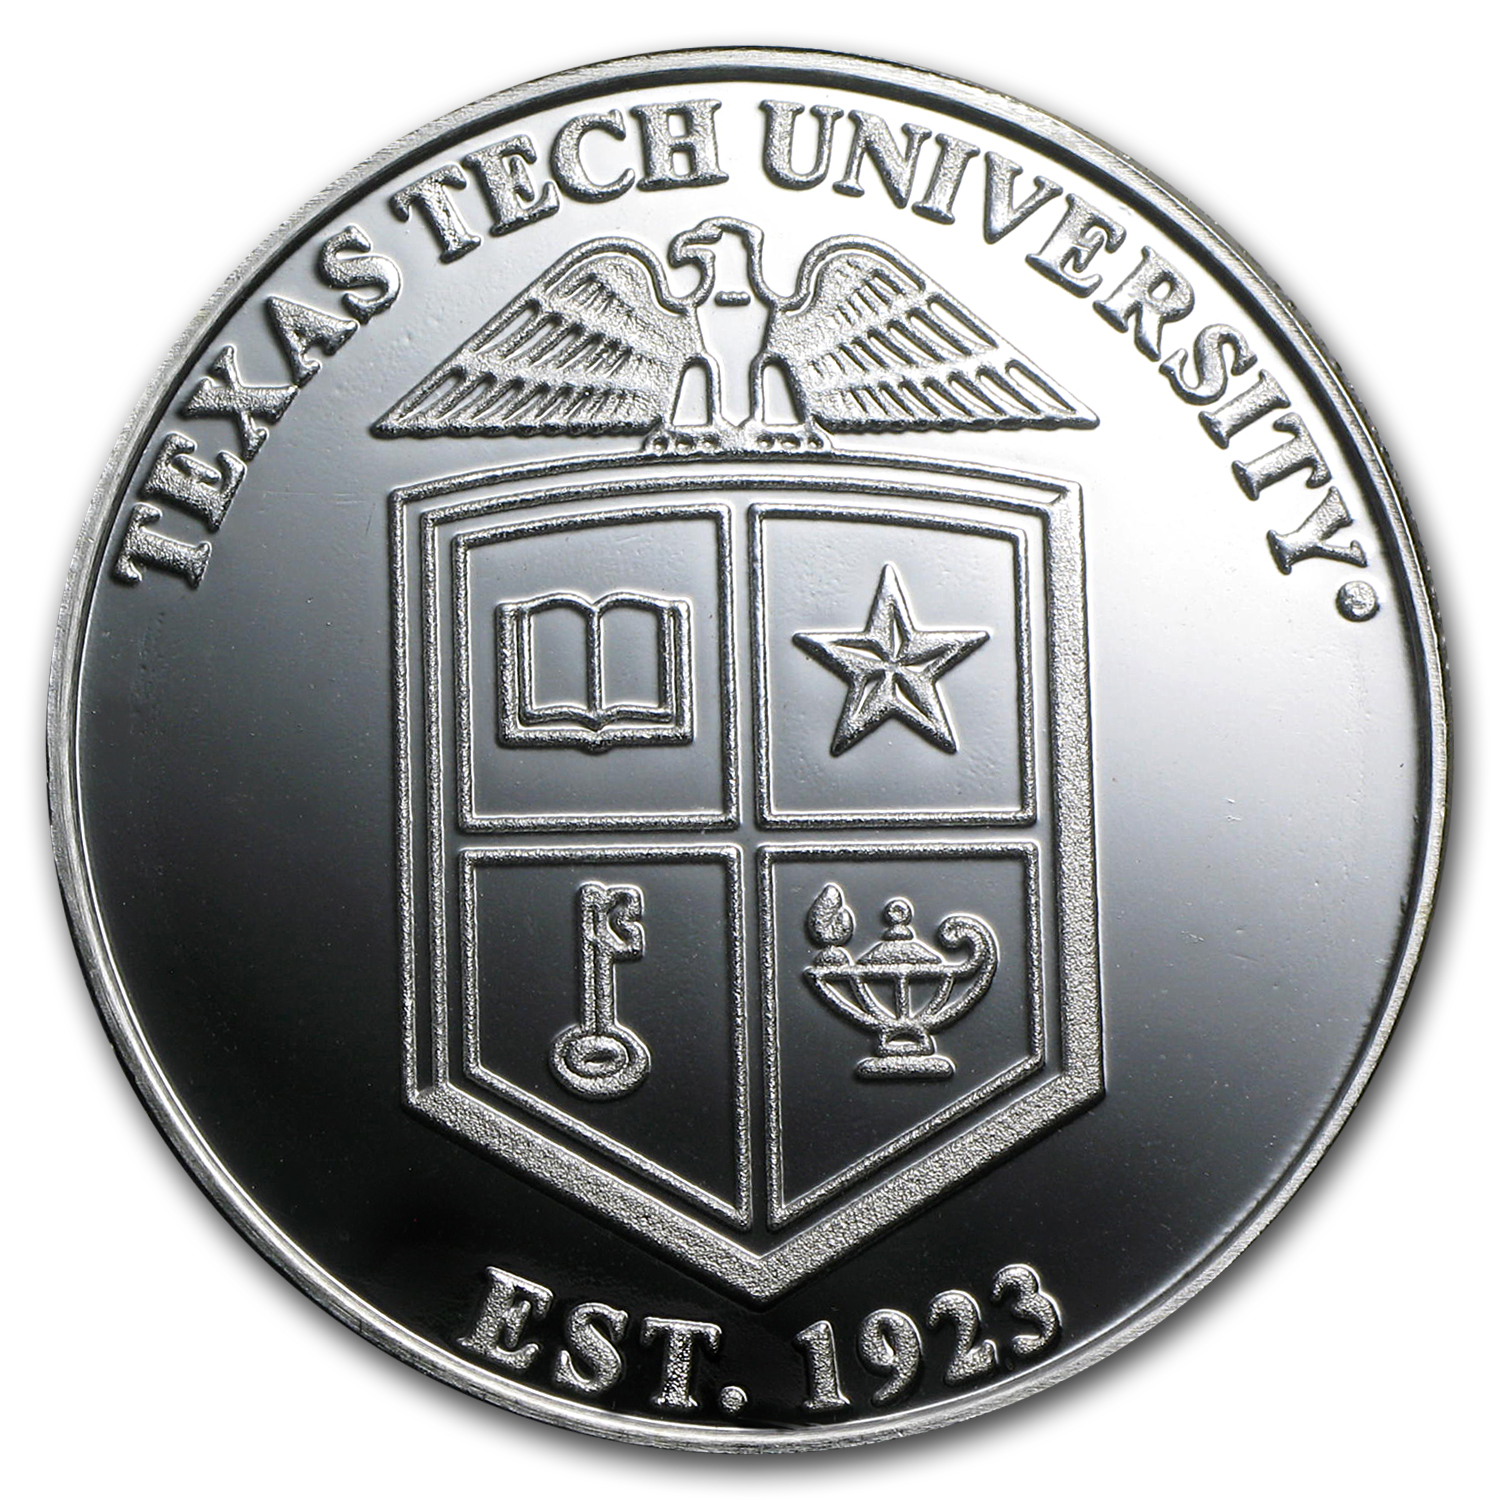 1 oz Silver Round - Texas Tech University